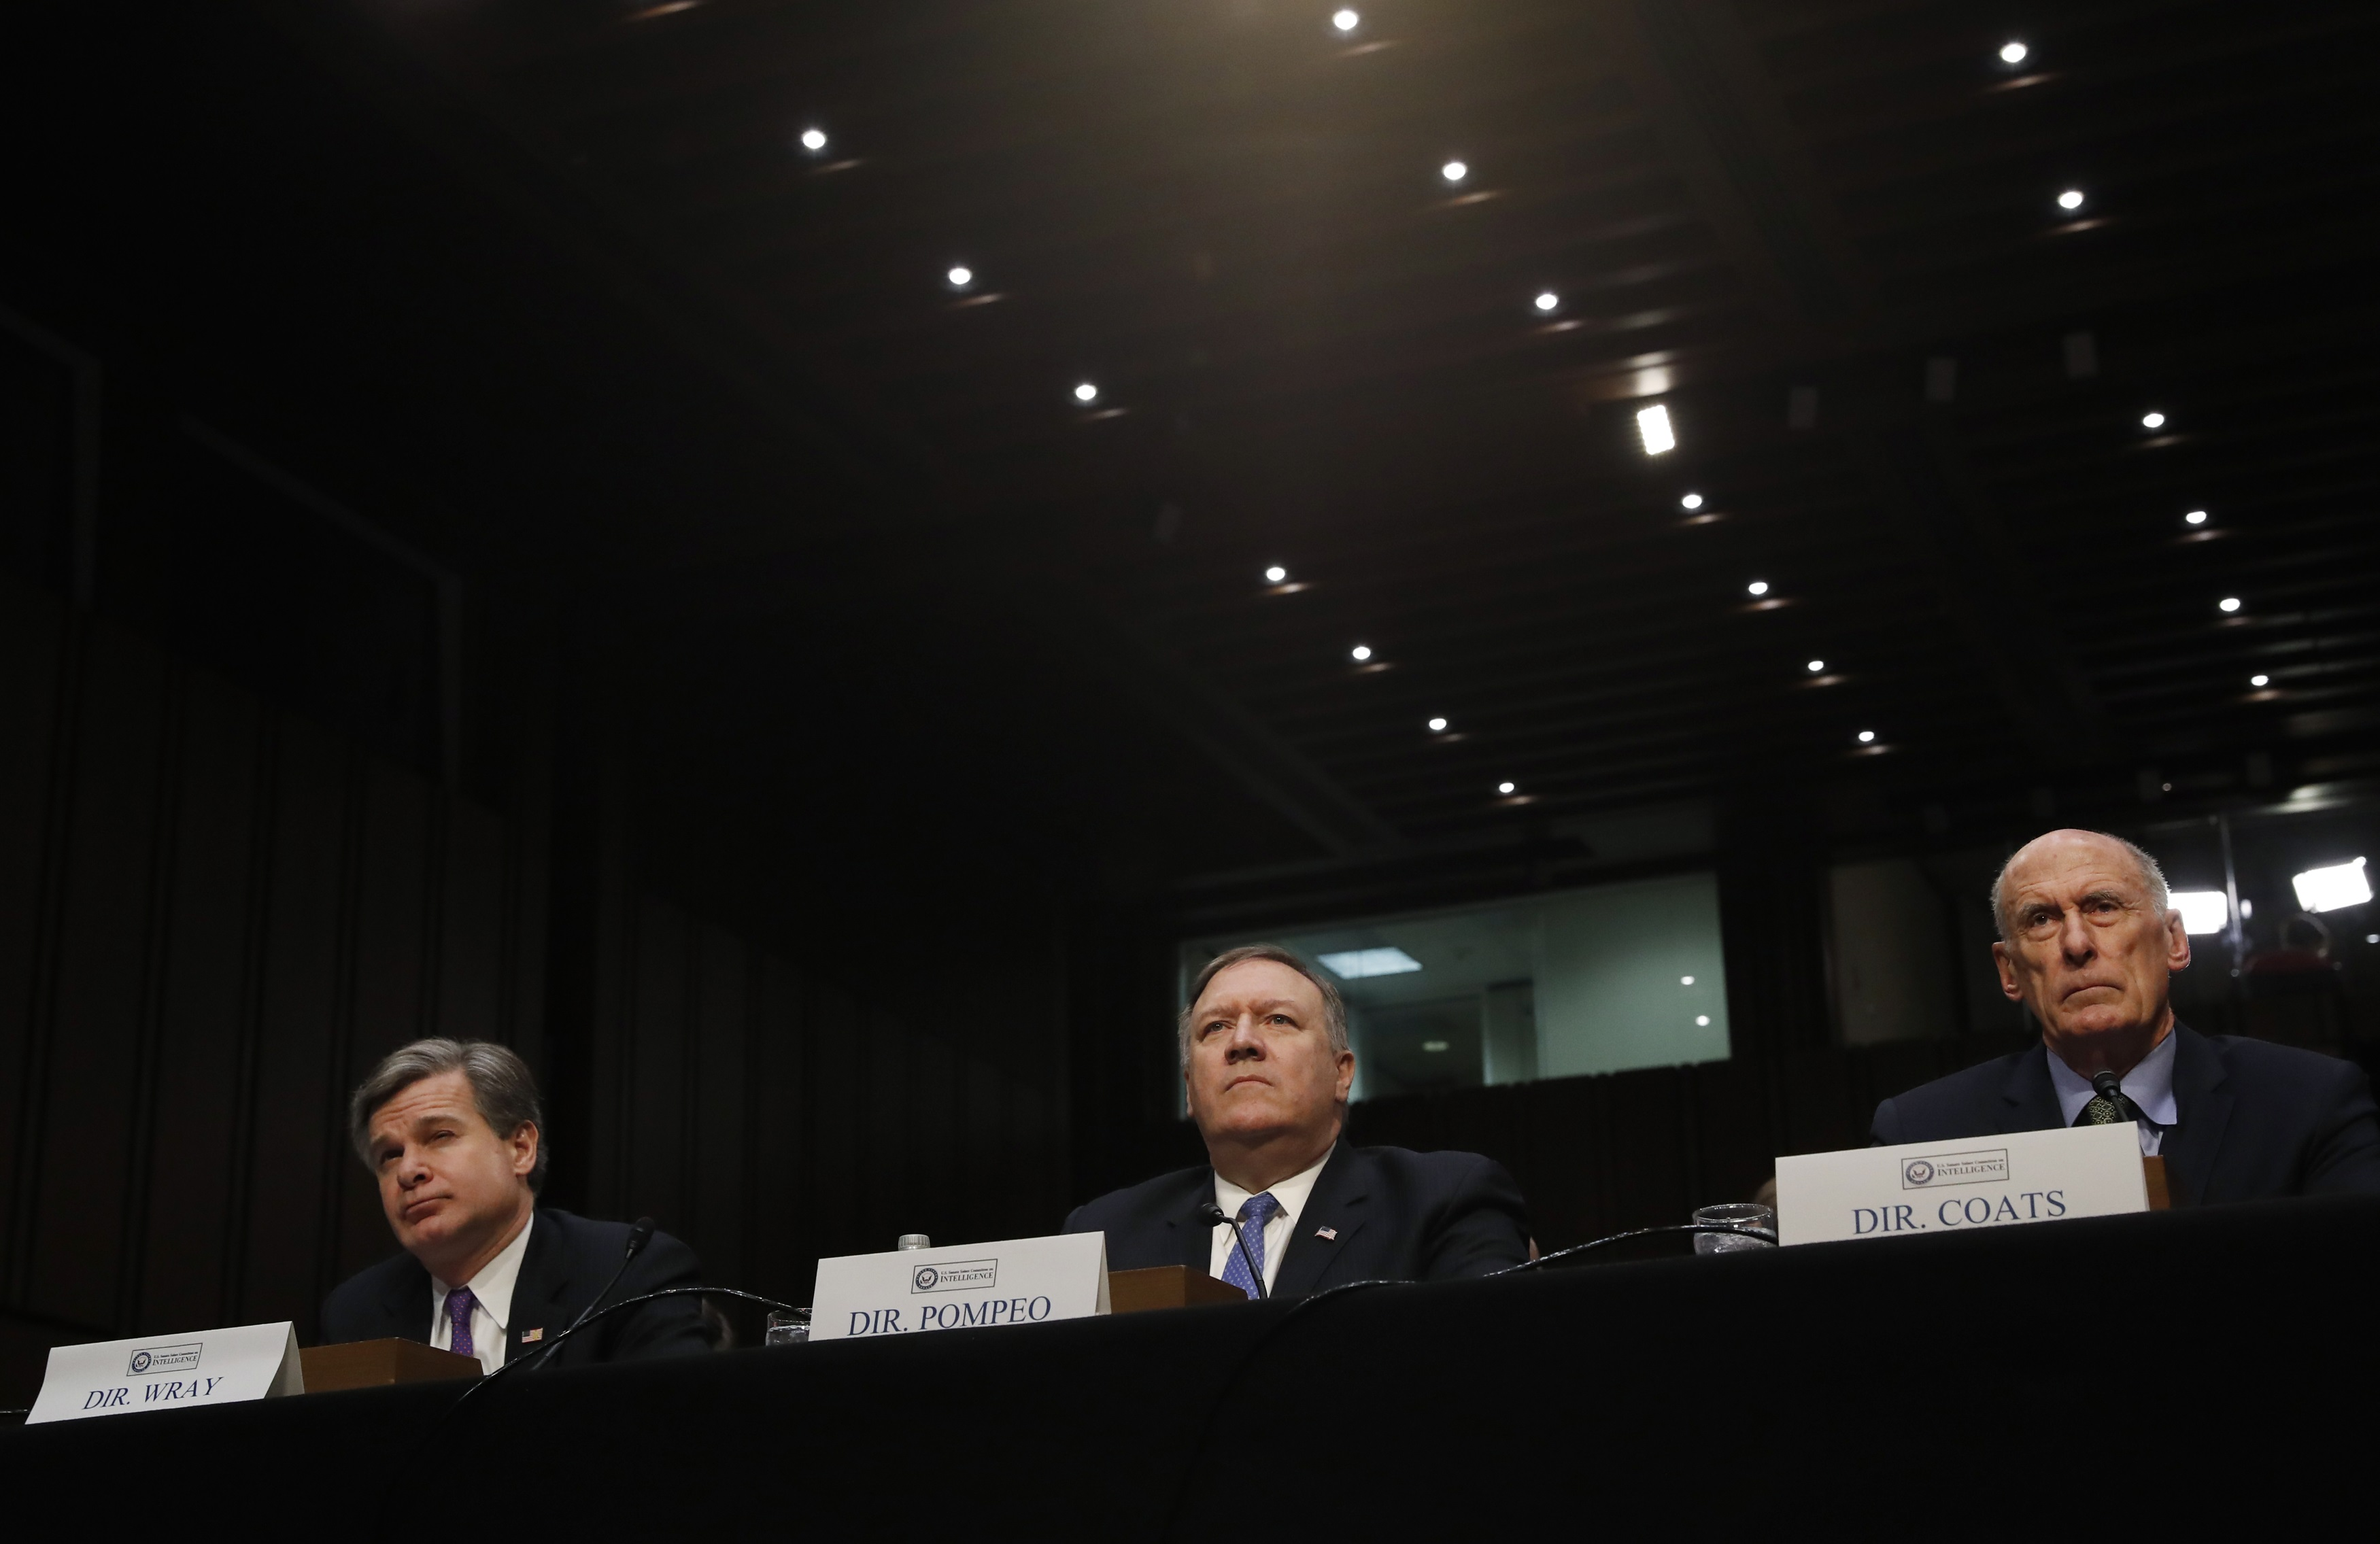 """Federal Bureau of Investigation (FBI) Director Christopher Wray; Central Intelligence Agency (CIA) Director Mike Pompeo; and Director of National Intelligence (DNI) Dan Coats testify before a Senate Intelligence Committee hearing on """"World Wide Threats"""" on Capitol Hill in Washington, U.S., February 13, 2018. REUTERS/Leah Millis"""